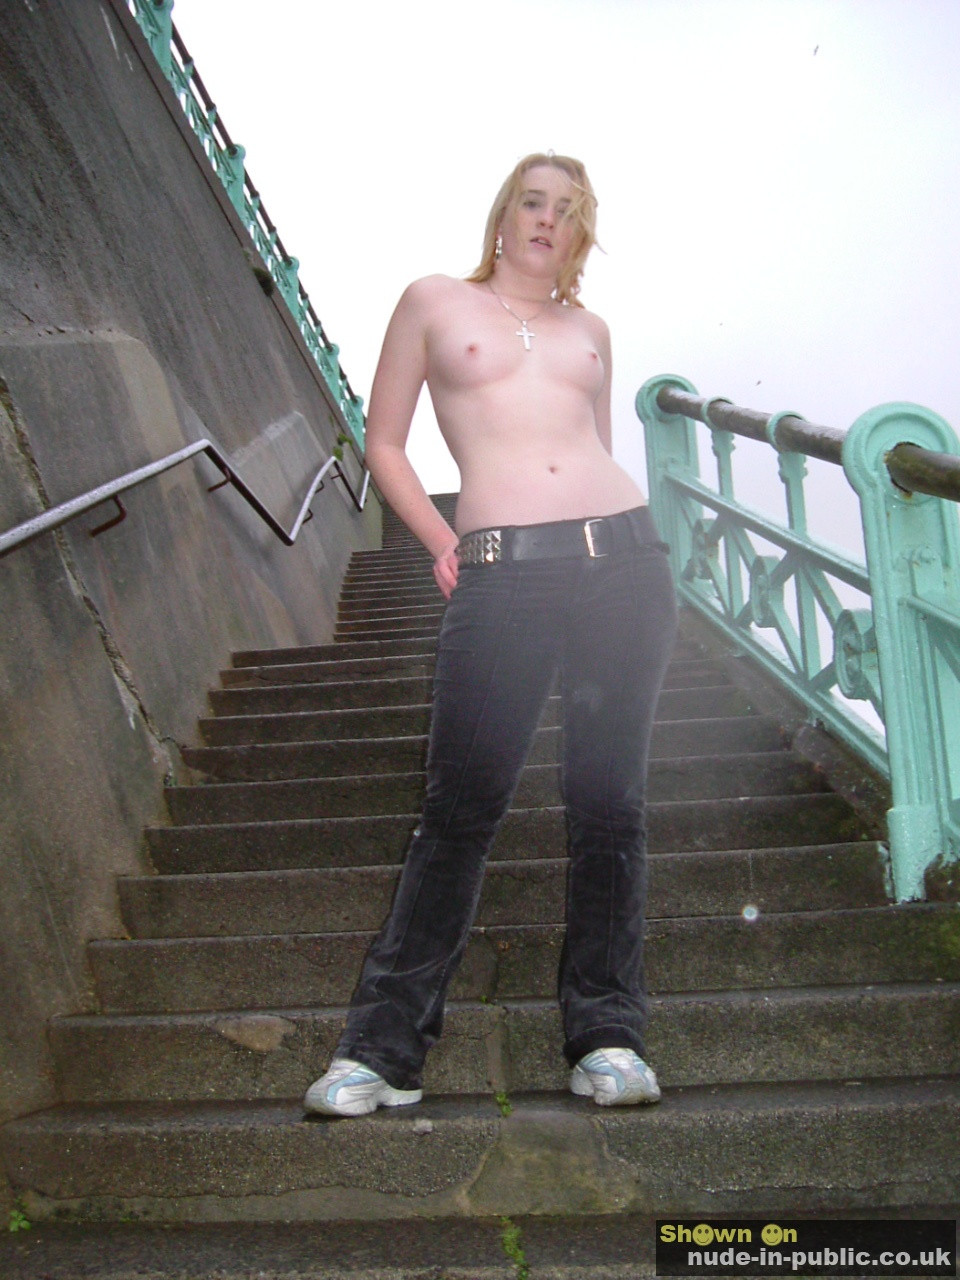 Female exhibitionist flashing in public